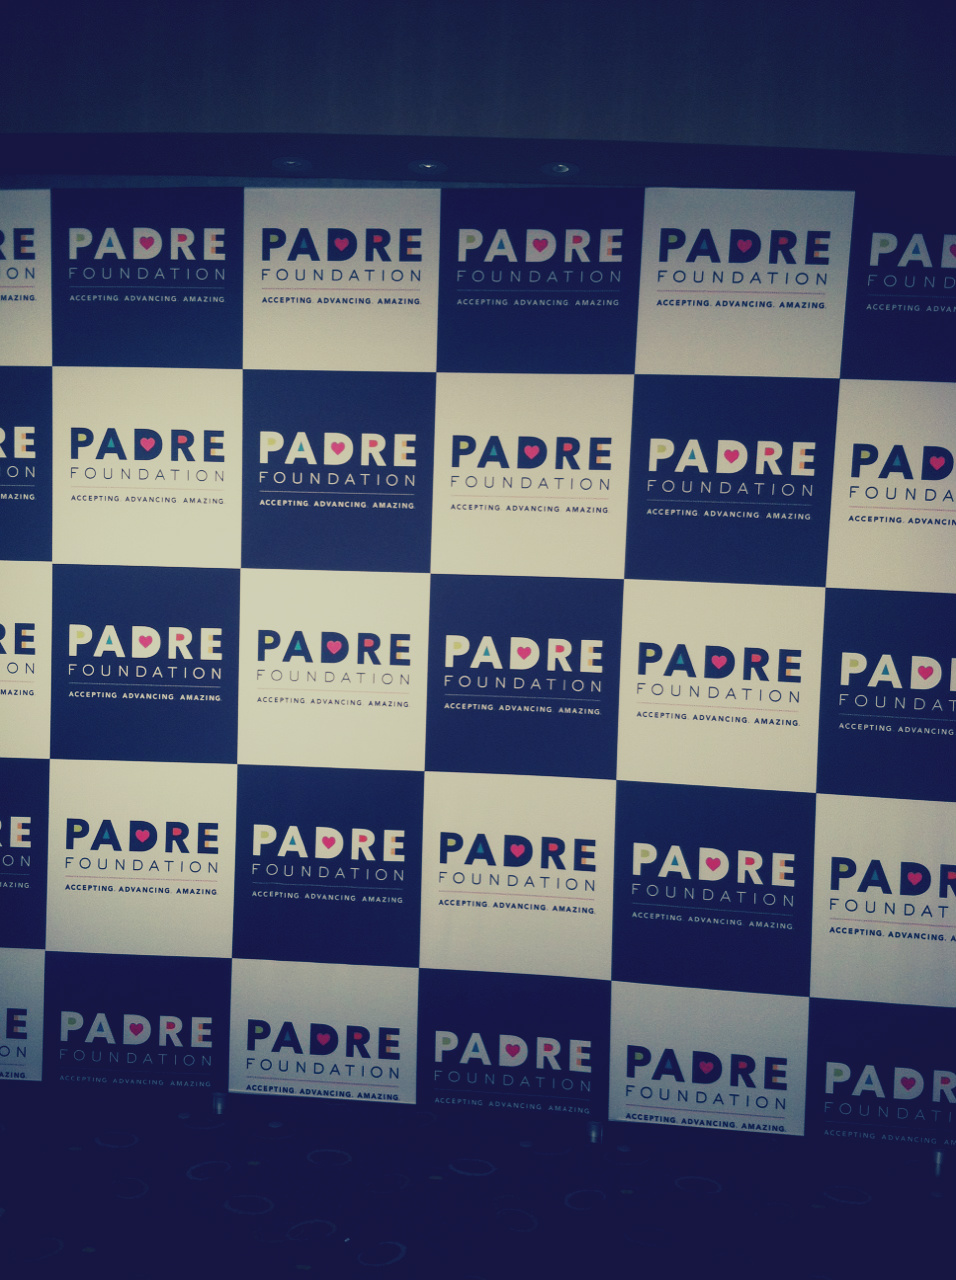 Padre Foundation.